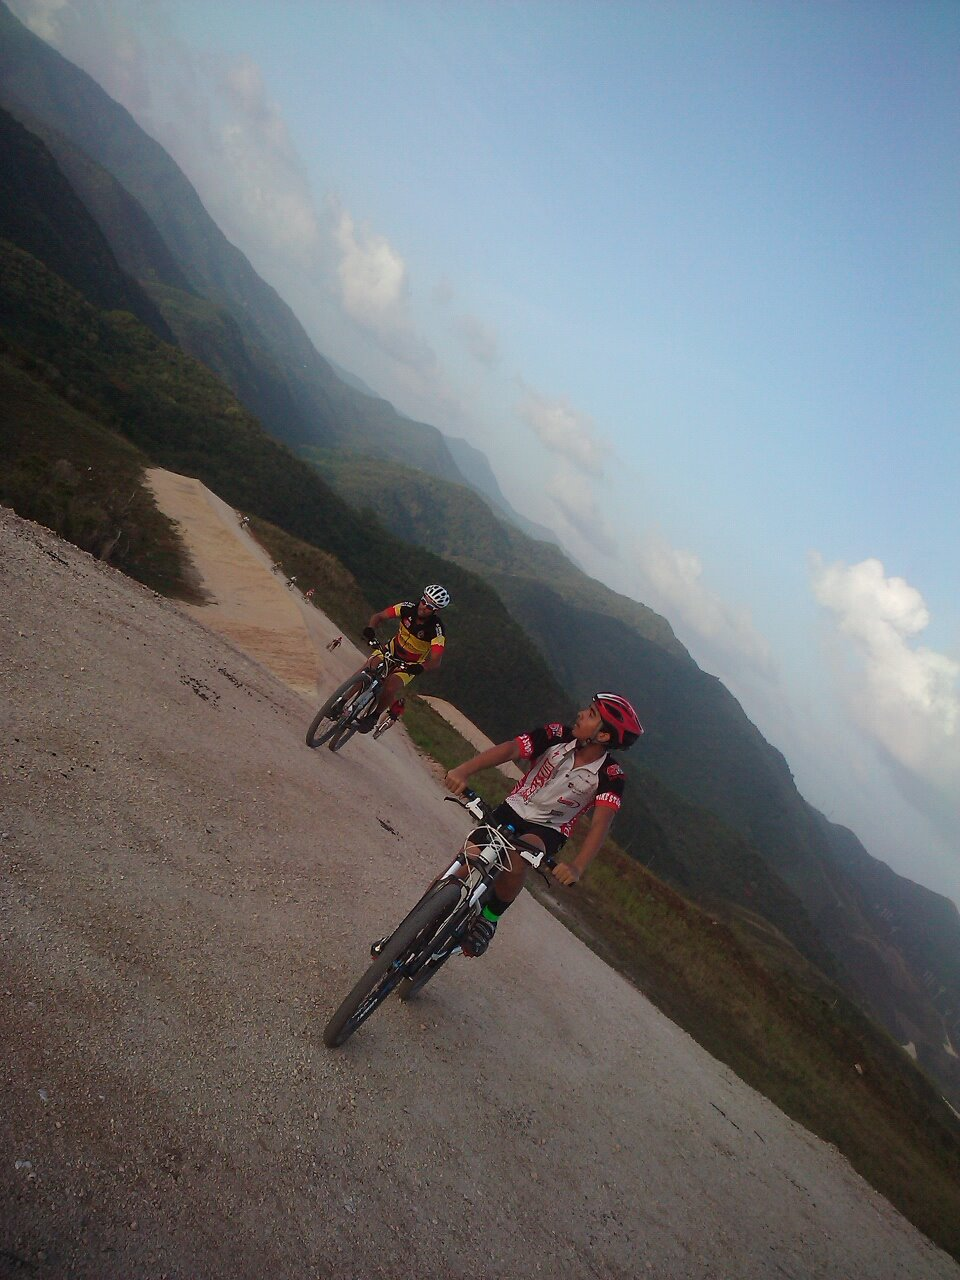 MTB Pedaling around Guayama P.R. in the White Roads